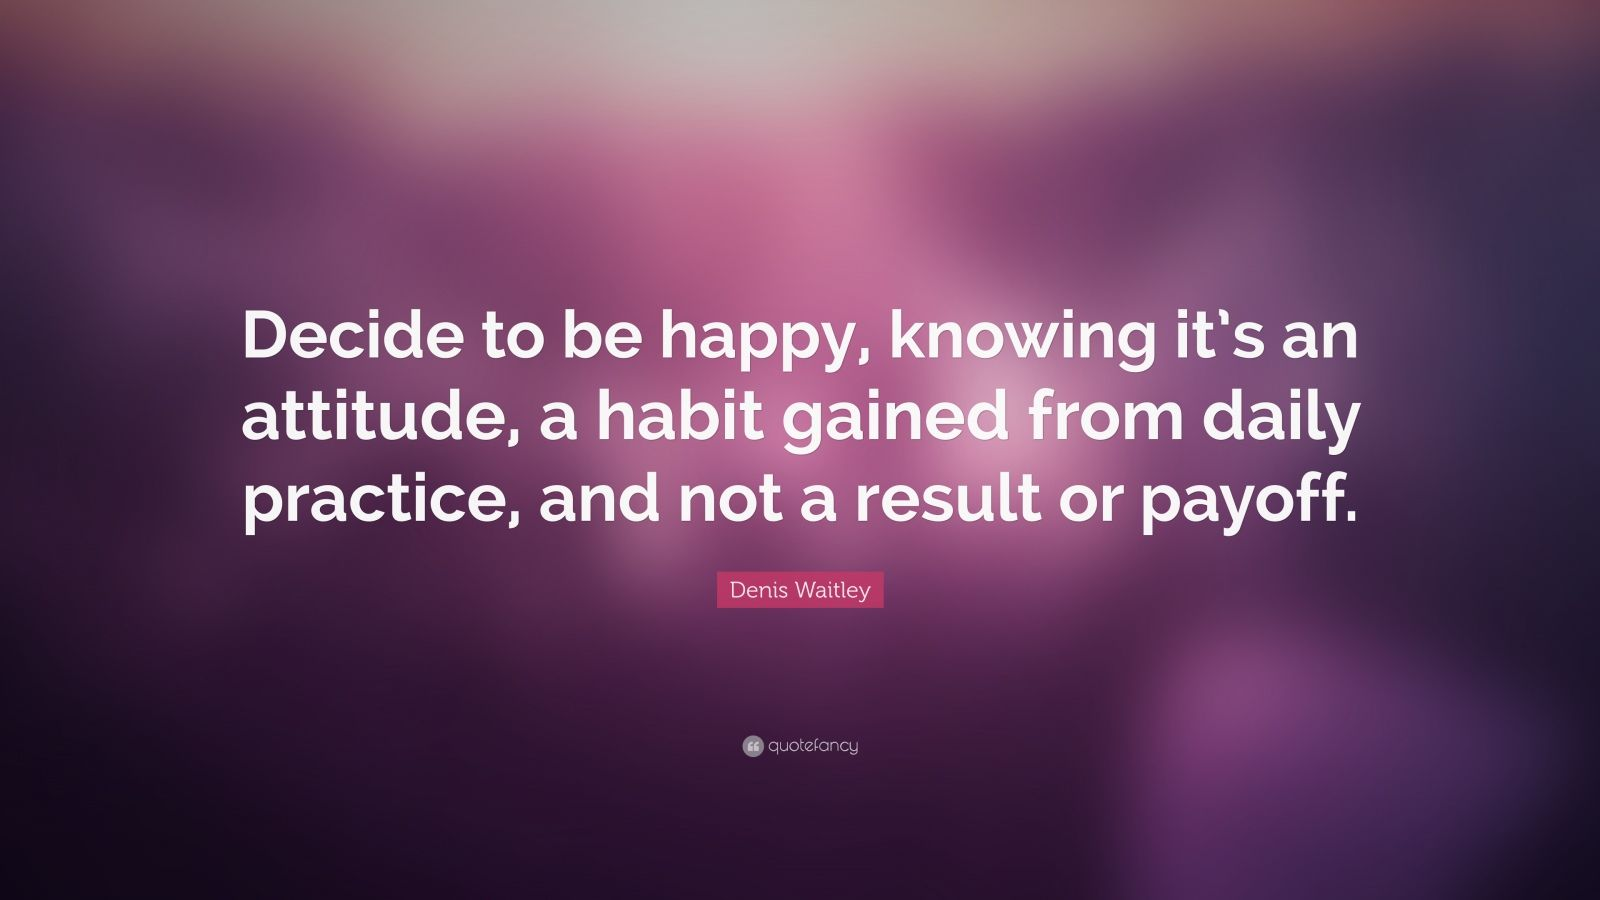 """Denis Waitley Quote: """"Decide to be happy, knowing it's an attitude, a habit gained from daily practice, and not a result or payoff."""""""